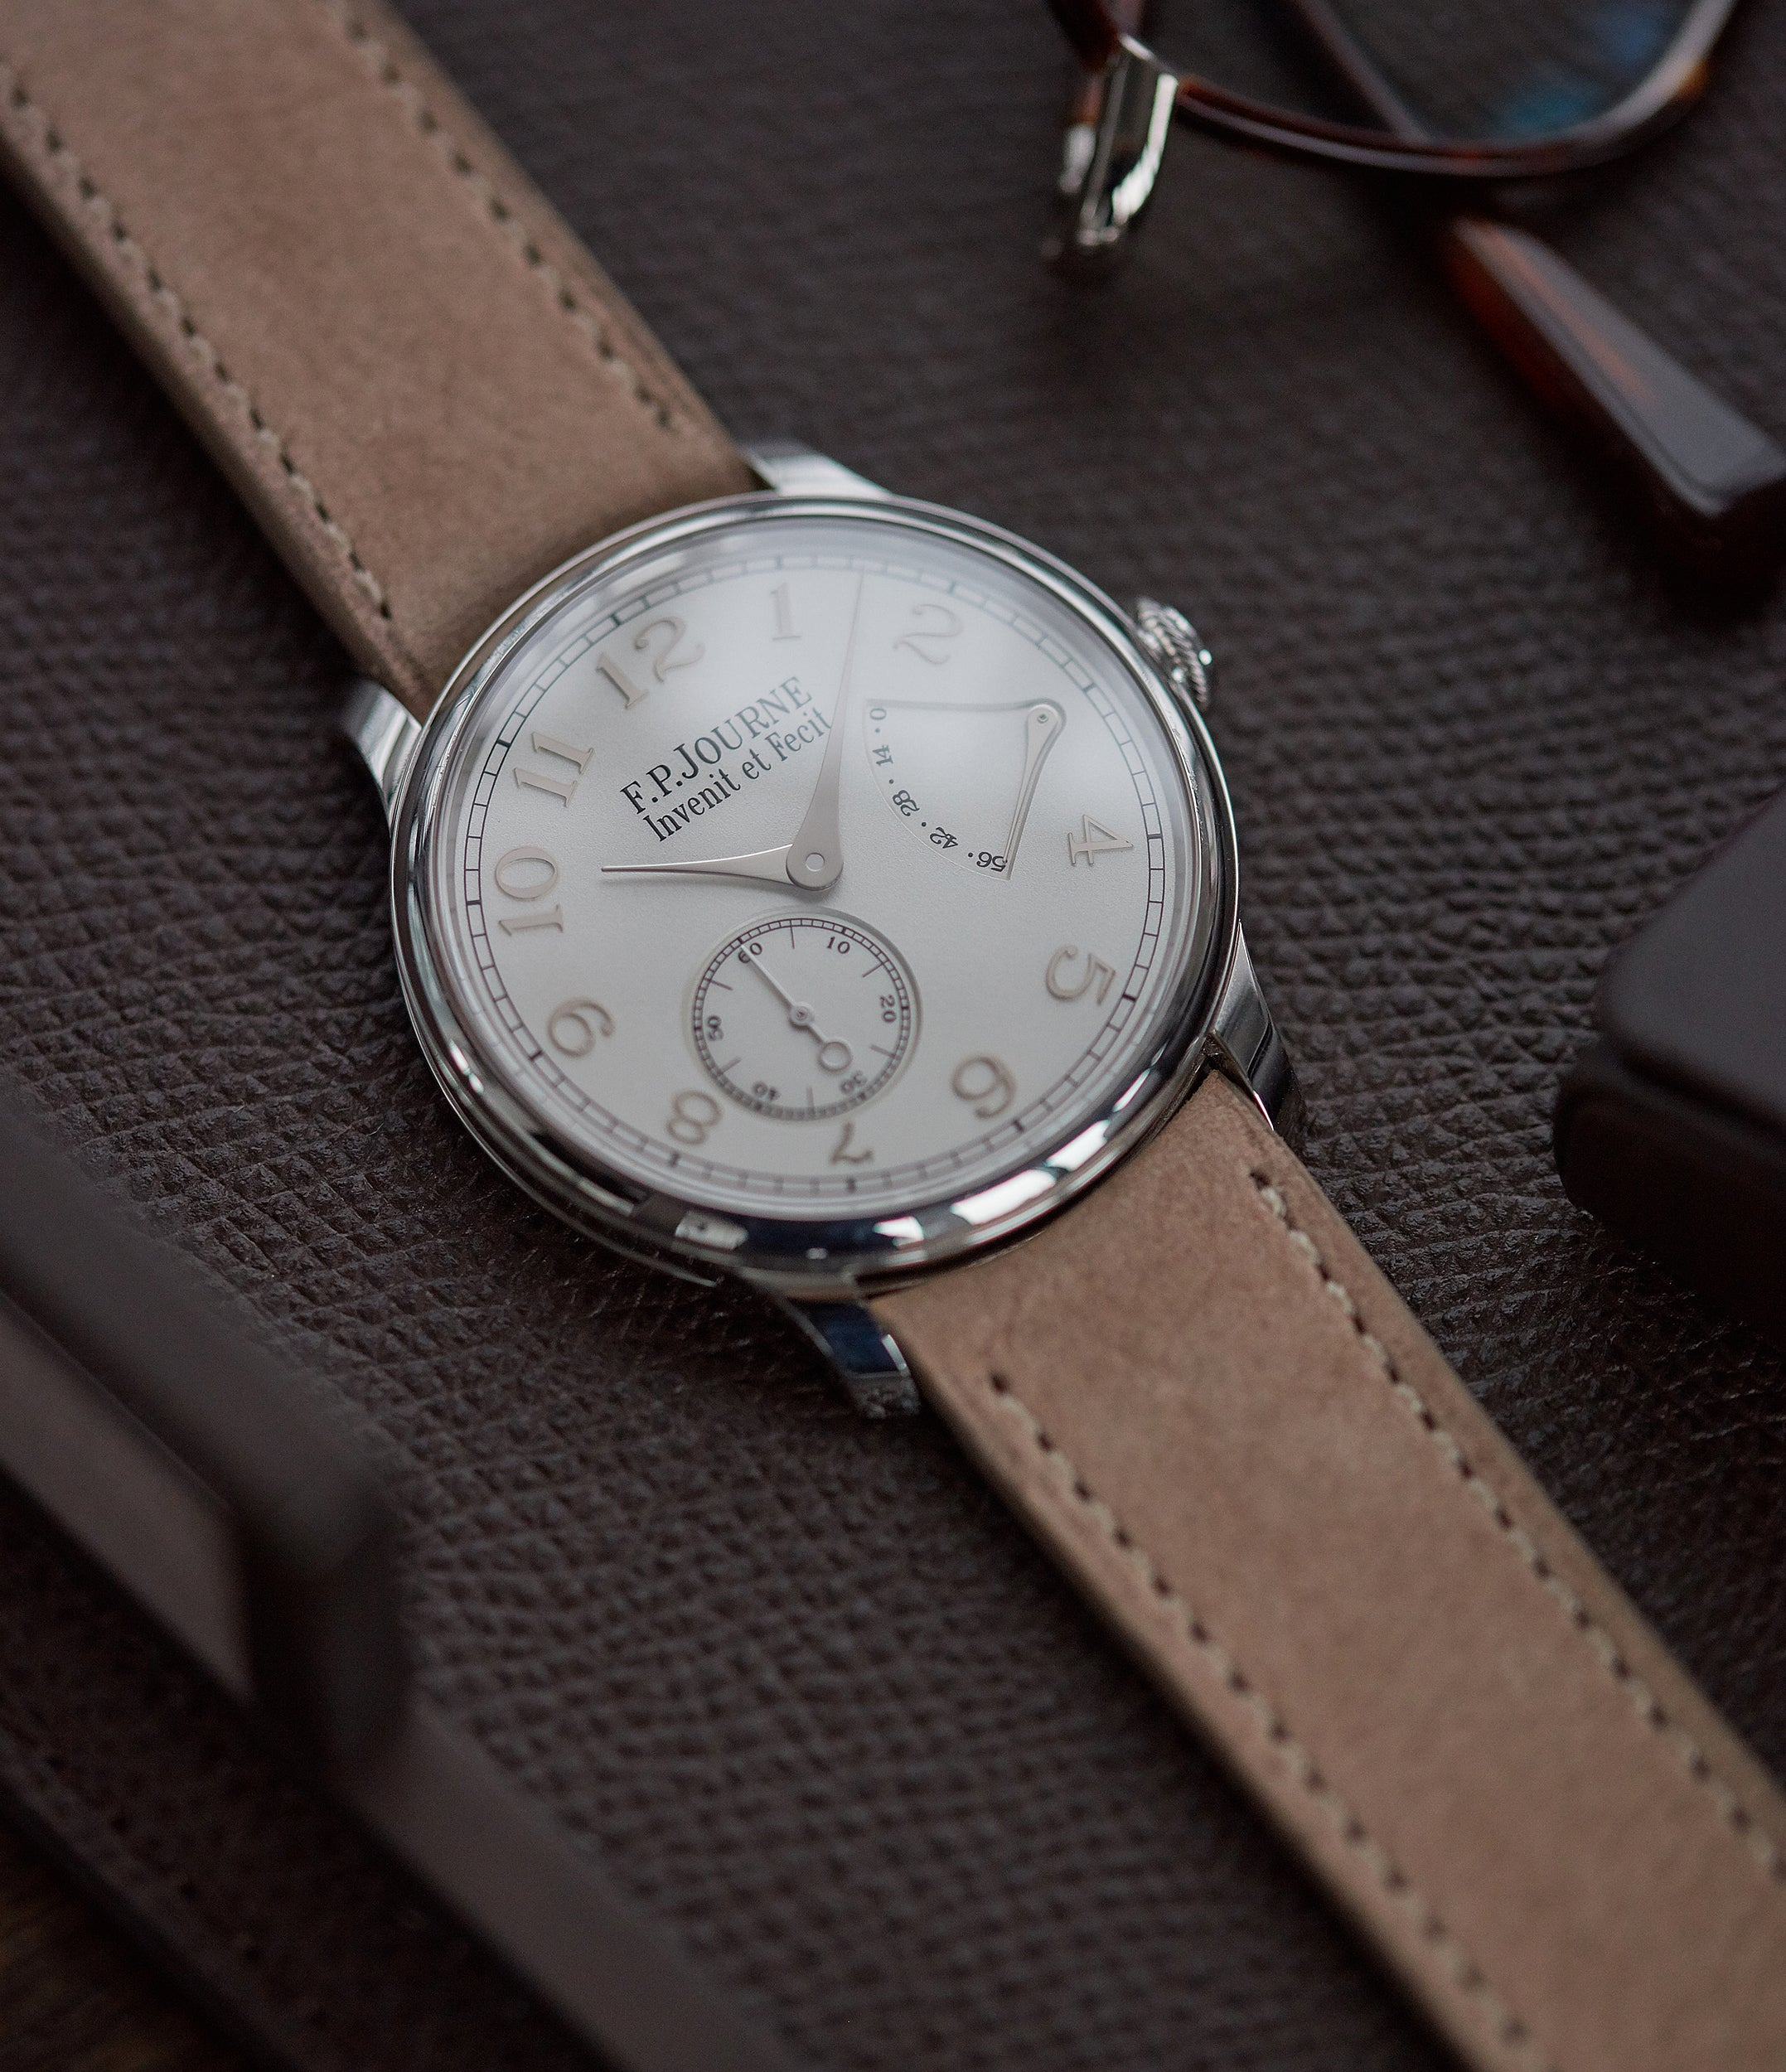 F. P. Journe Chronometre Souverain 38mm platinum silver custom dial for sale online at A Collected Man London UK specialist of independent watchmakers